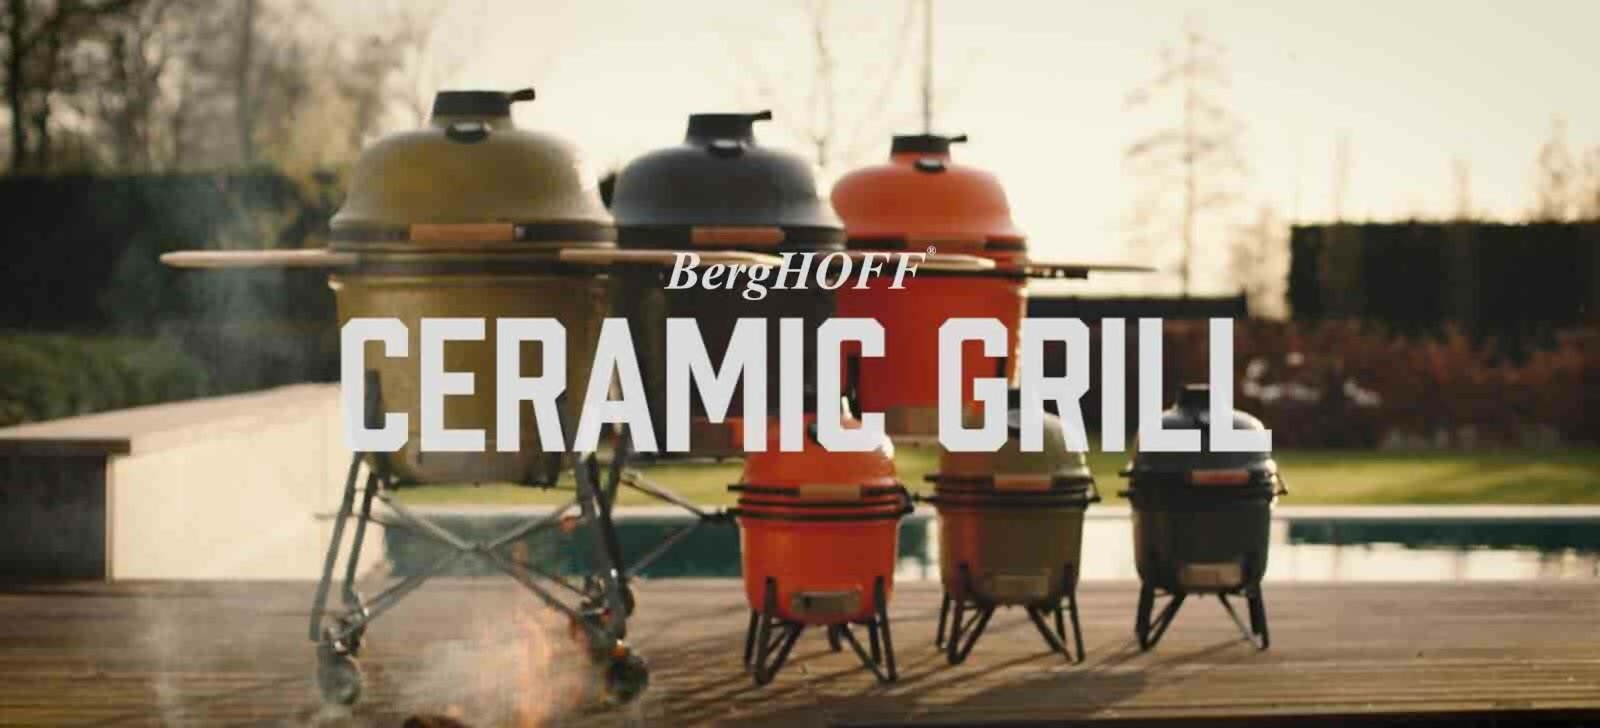 Berghoff 21 kamado charcoal grill reviews wayfair 21 kamado charcoal grill dailygadgetfo Image collections